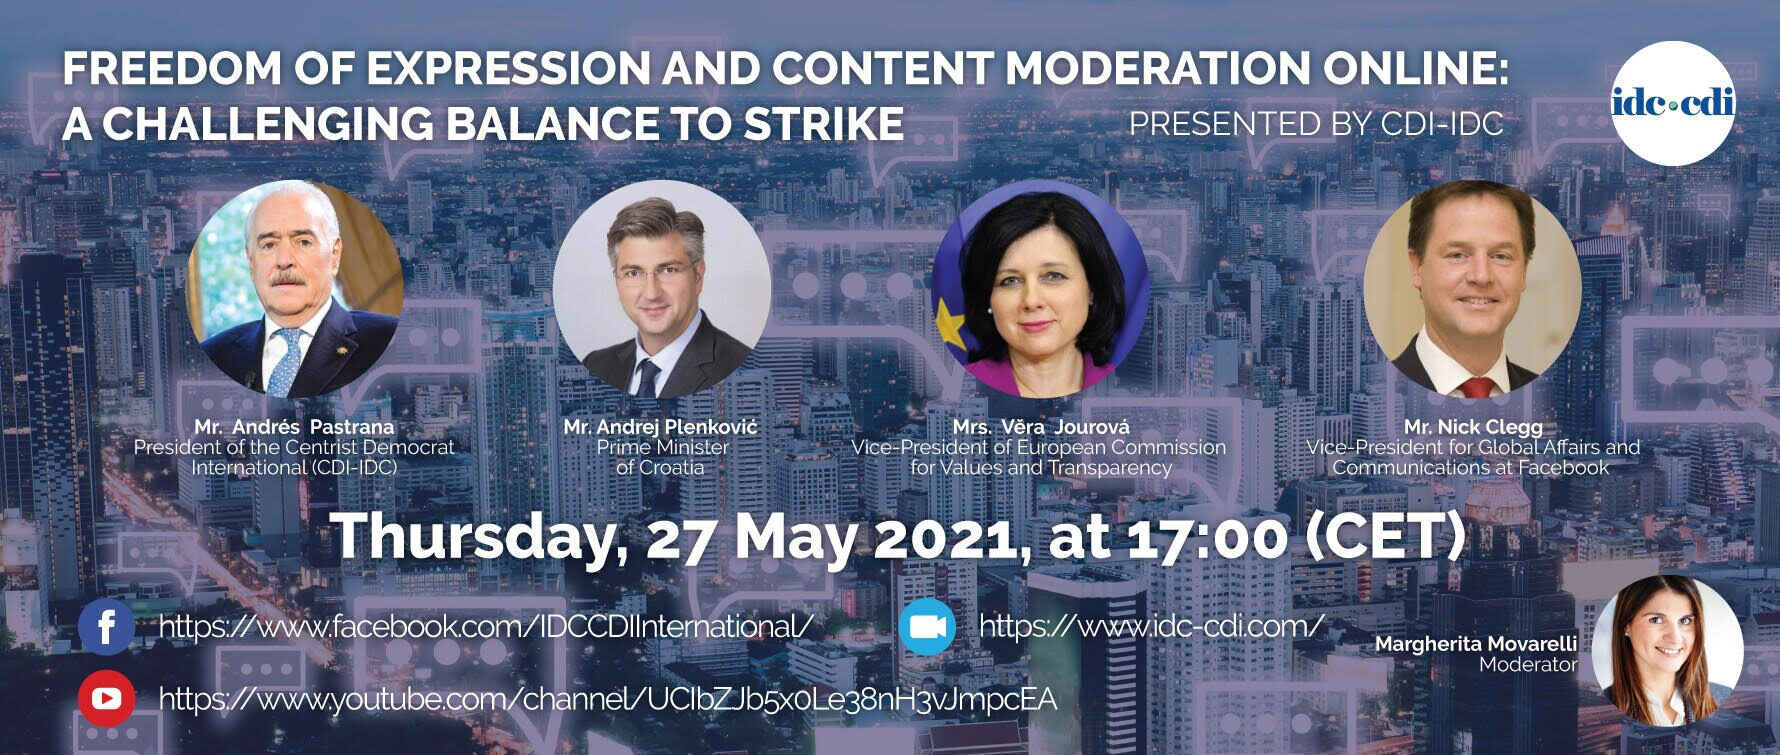 LIVE Webinar: Freedom of expression and content moderation online: a challenging balance to strike